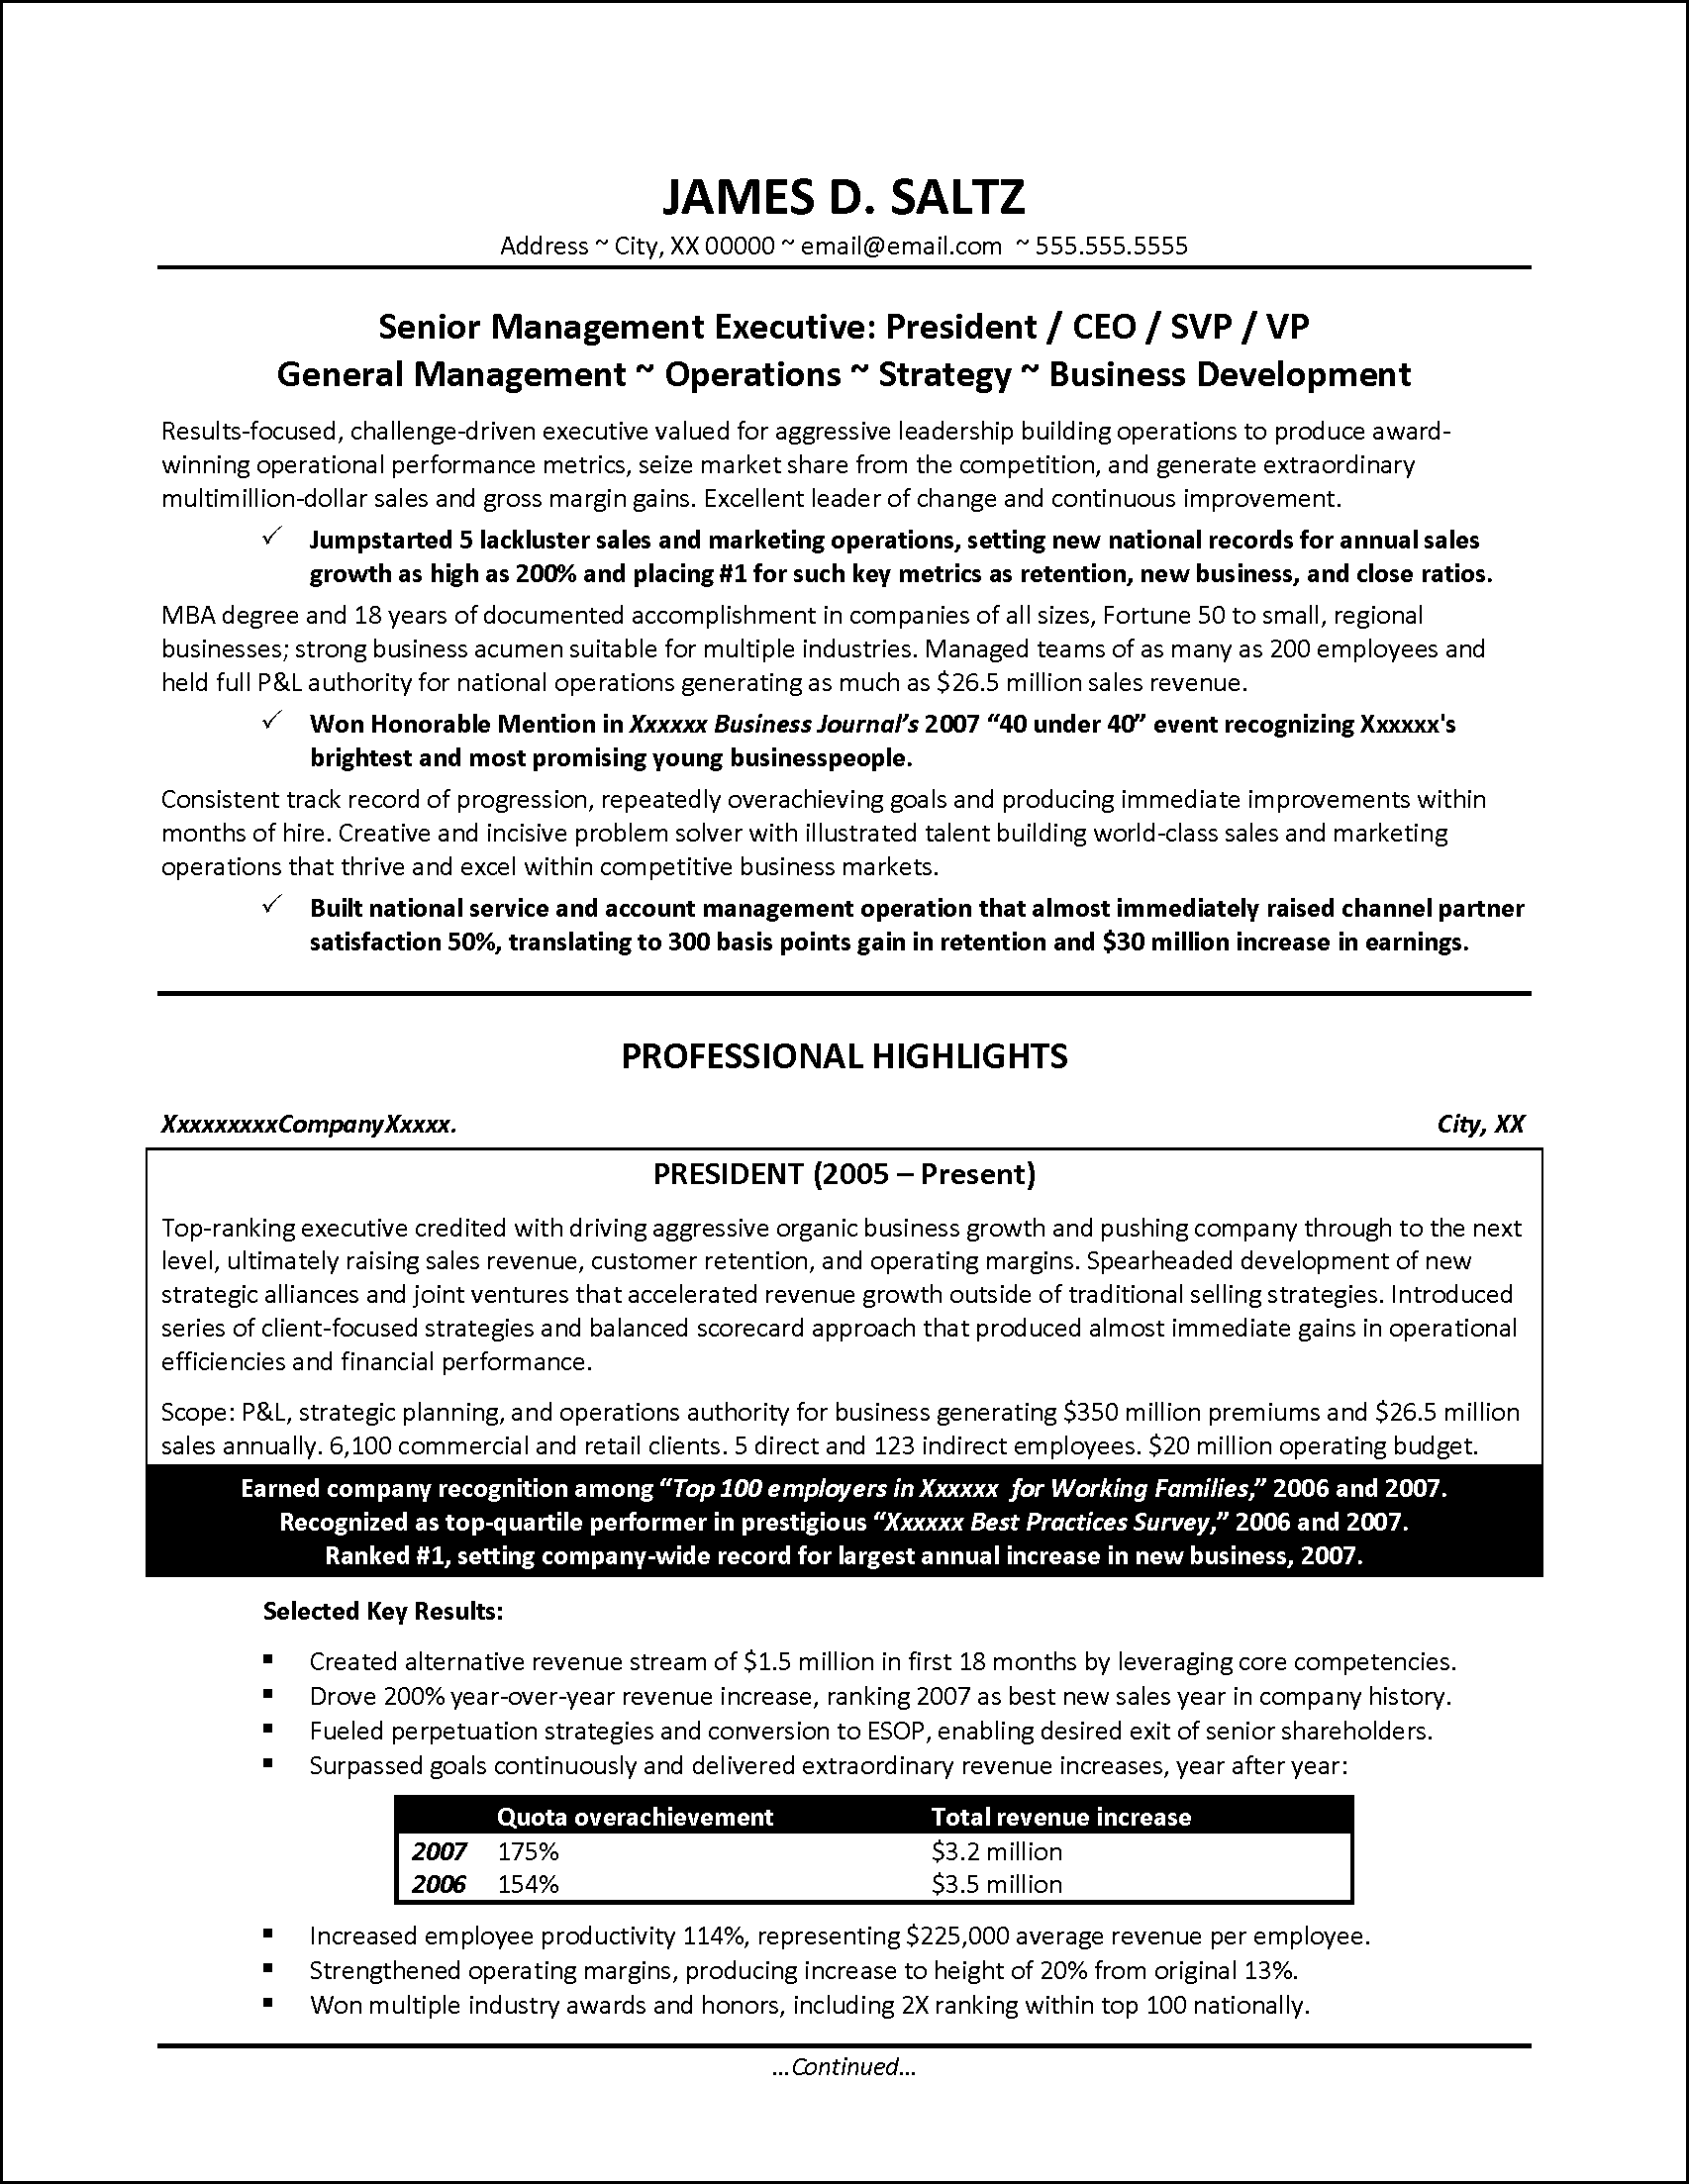 VIP-resume5-gray_Page_1.png